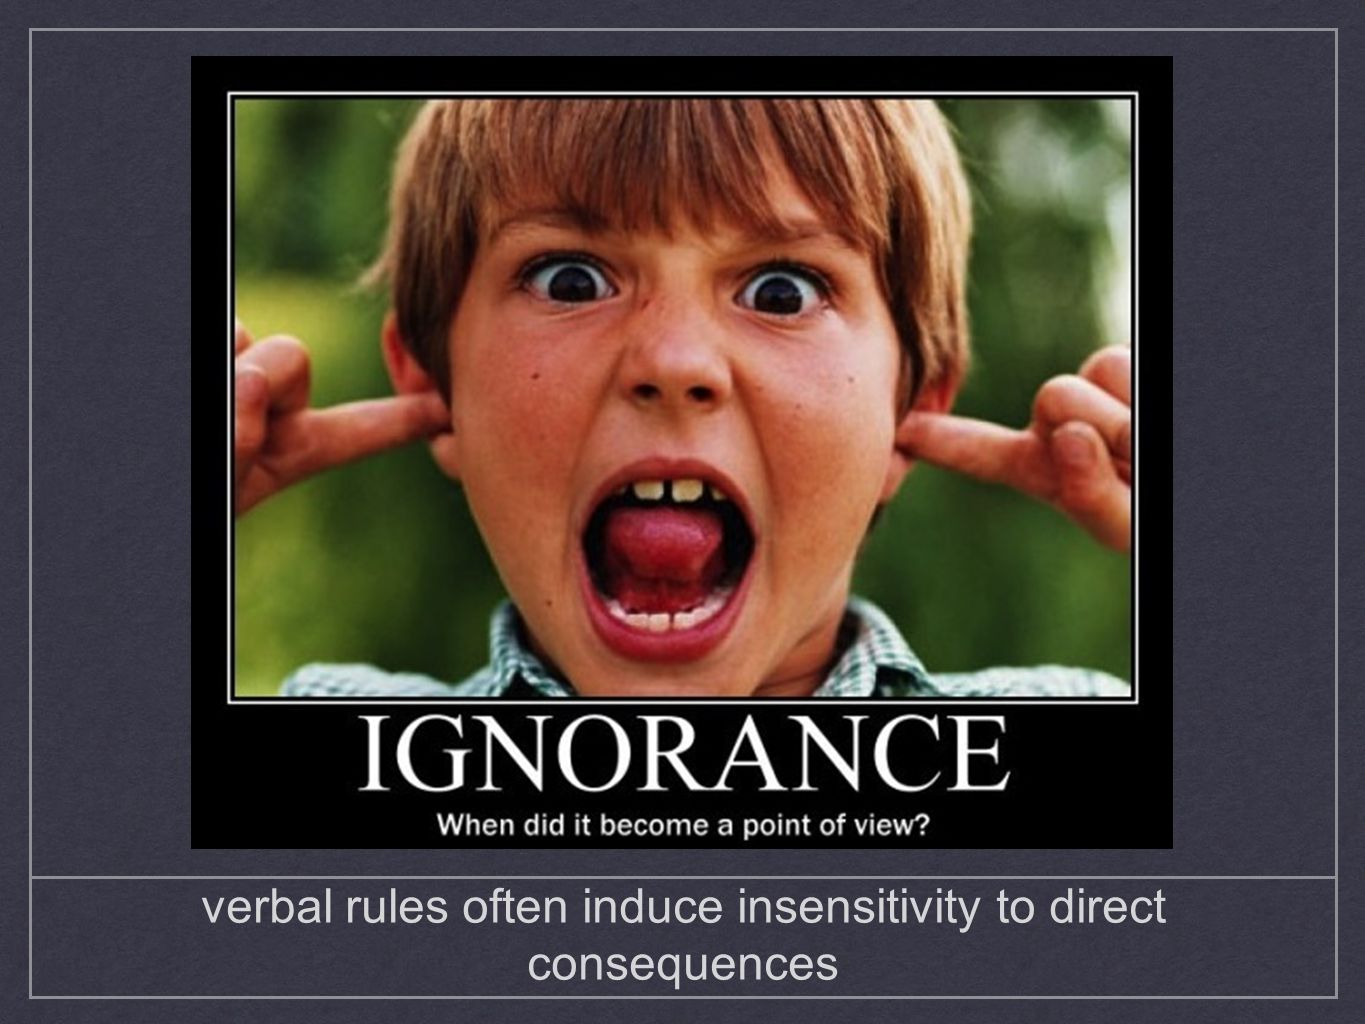 verbal rules often induce insensitivity to direct consequences